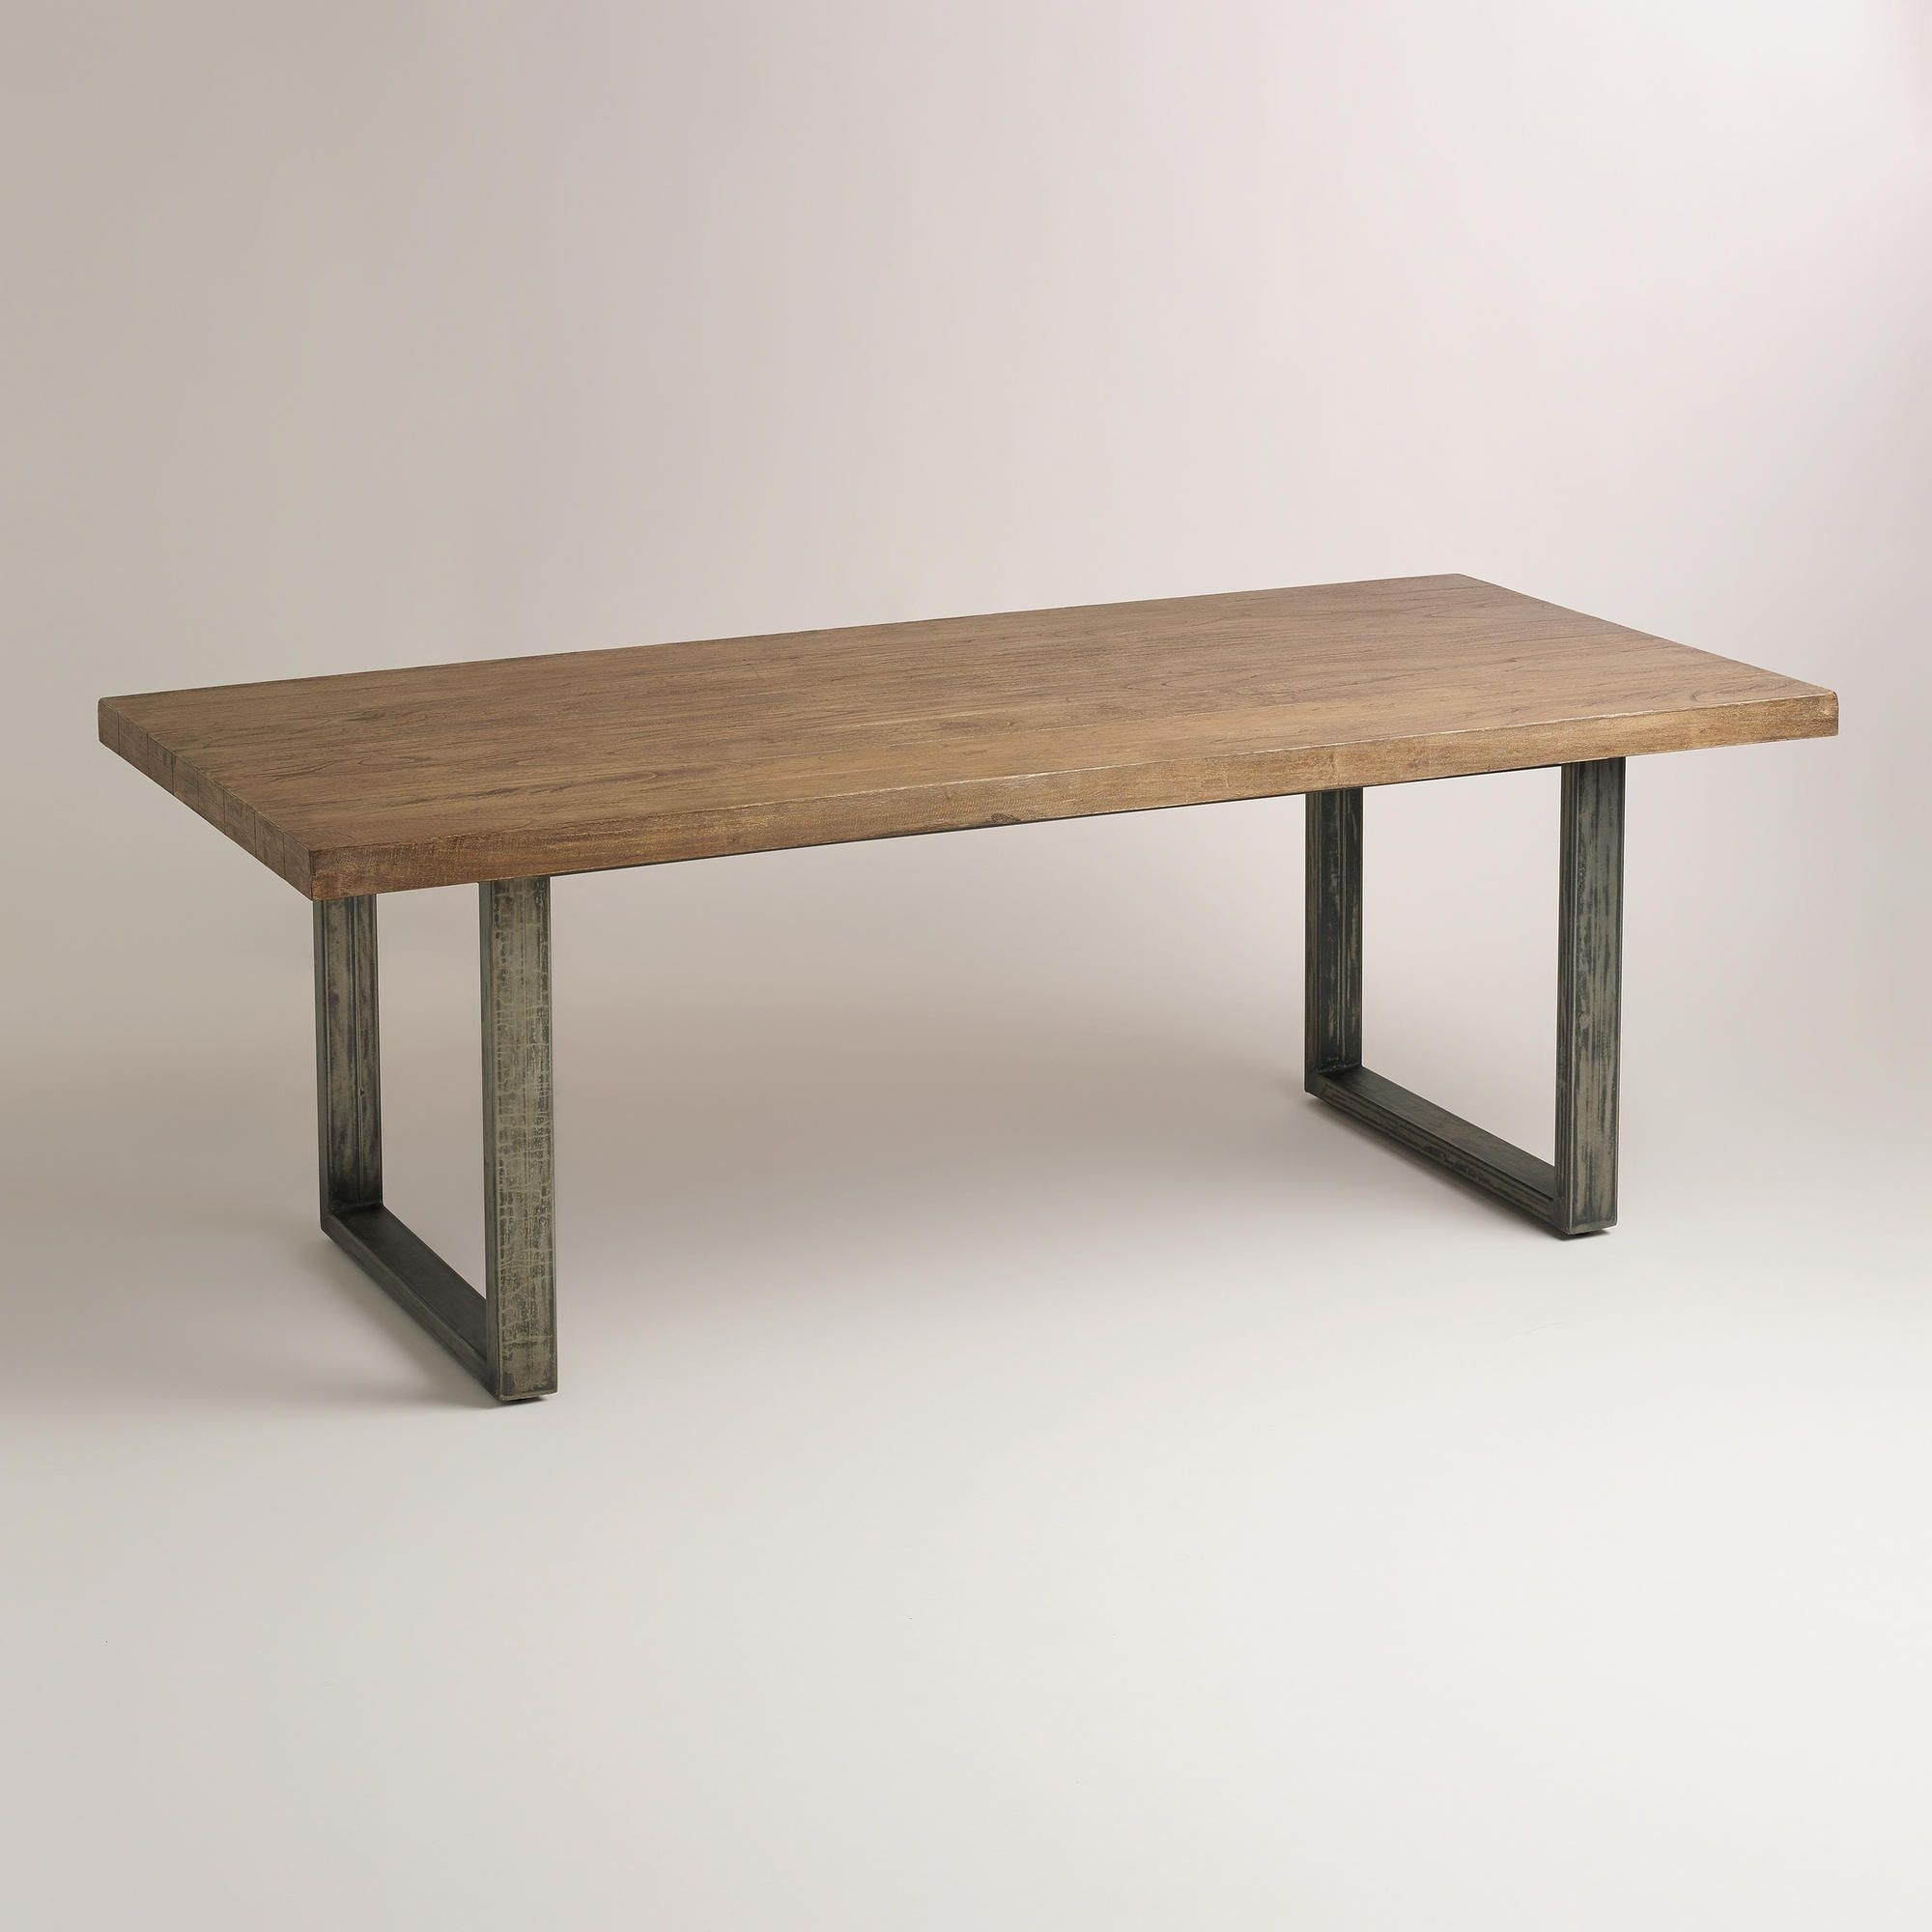 Wood And Metal Edgar Dining Table | World Market $700 | Ideas For Intended For Most Current Market Dining Tables (Image 16 of 20)